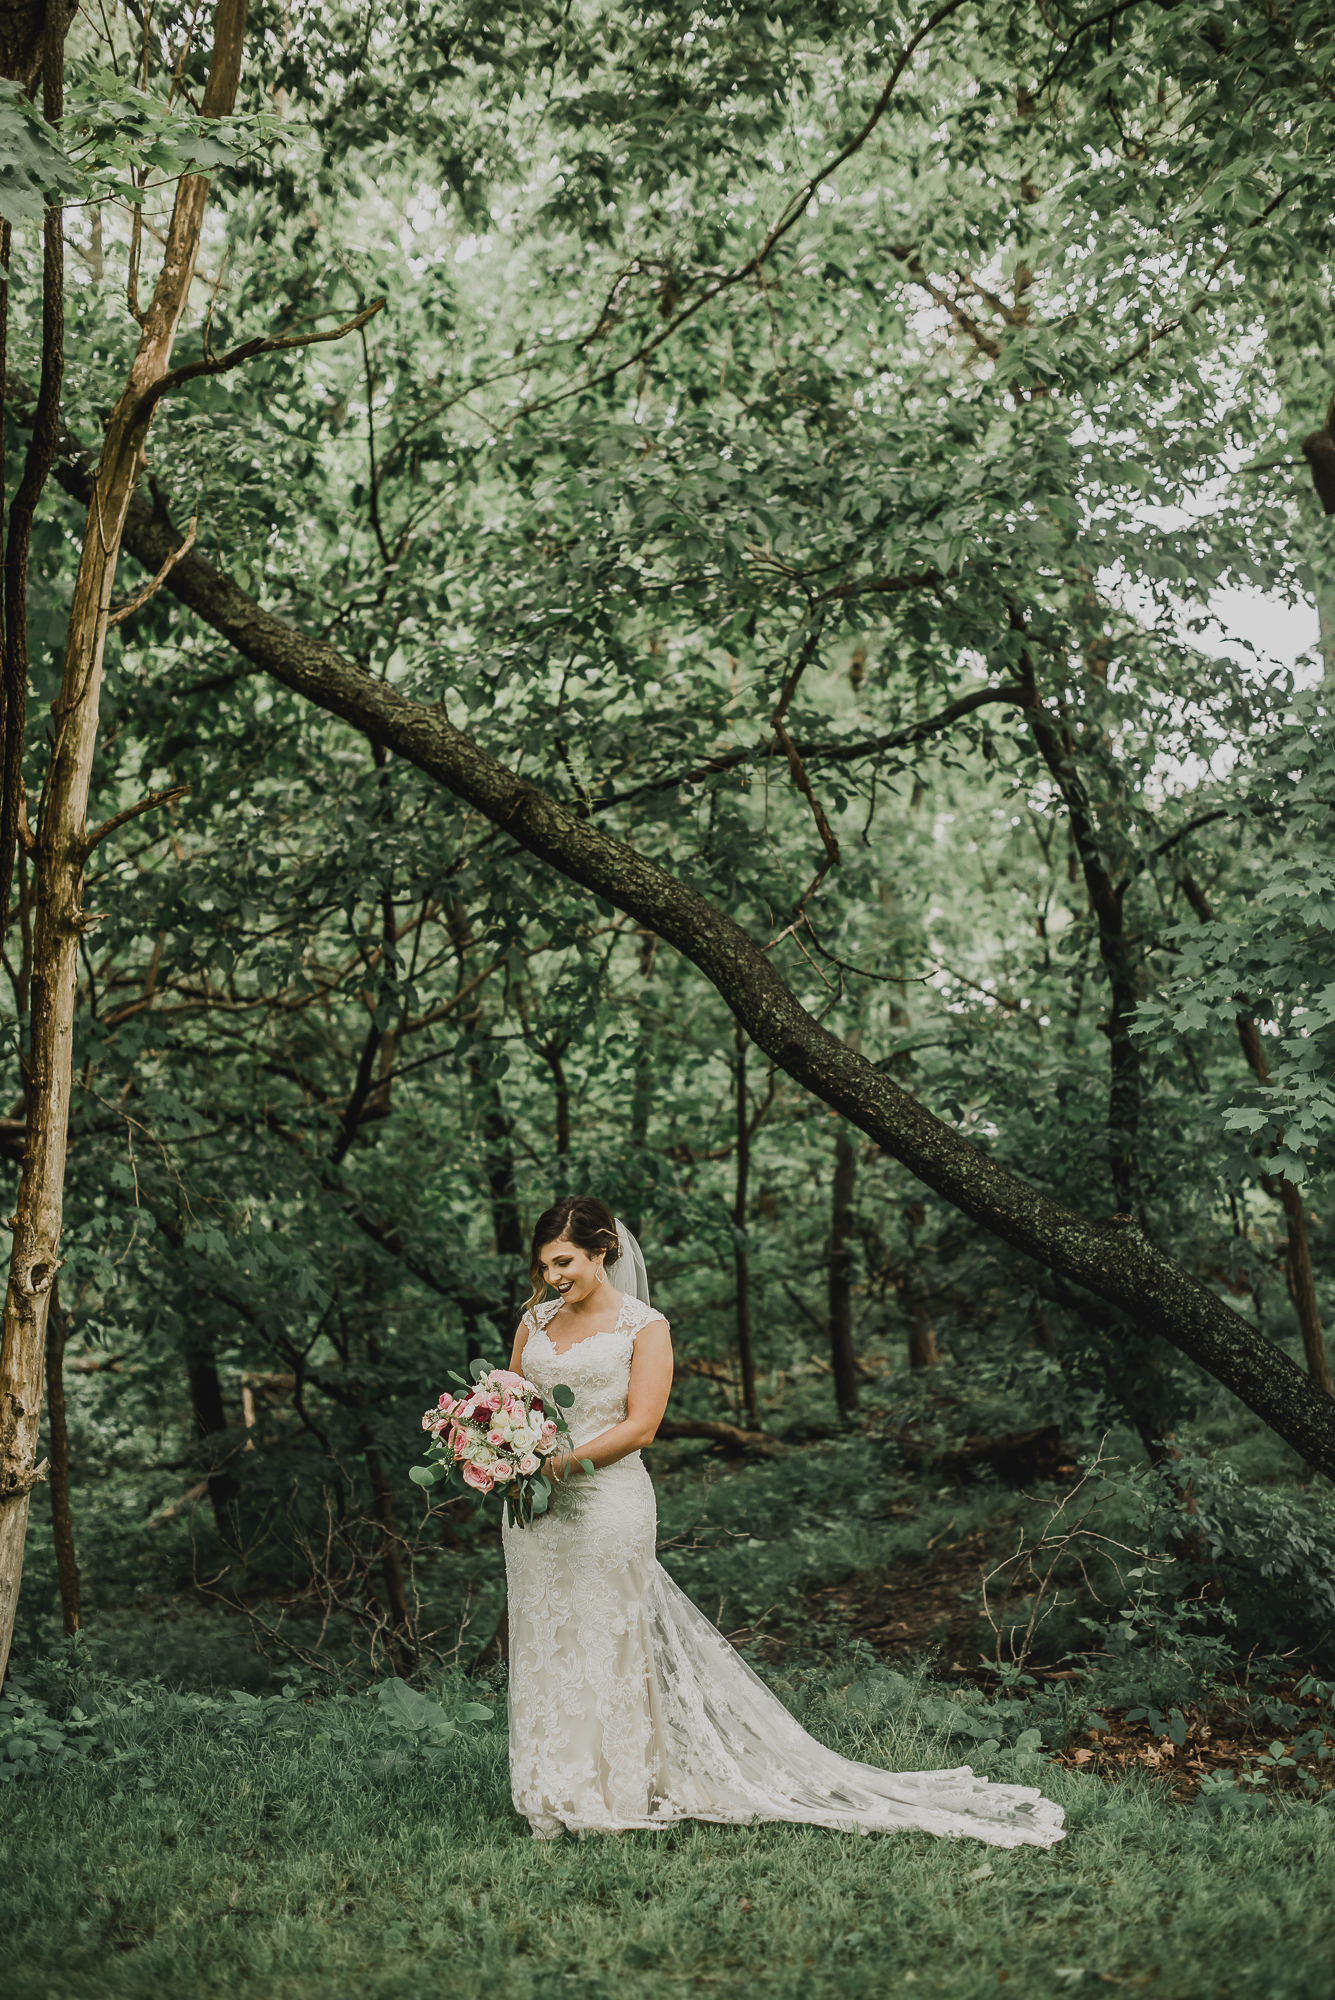 Melissa Cervantes Photography _ Kelsey + Ben Junebug Weddings Submission-29.jpg